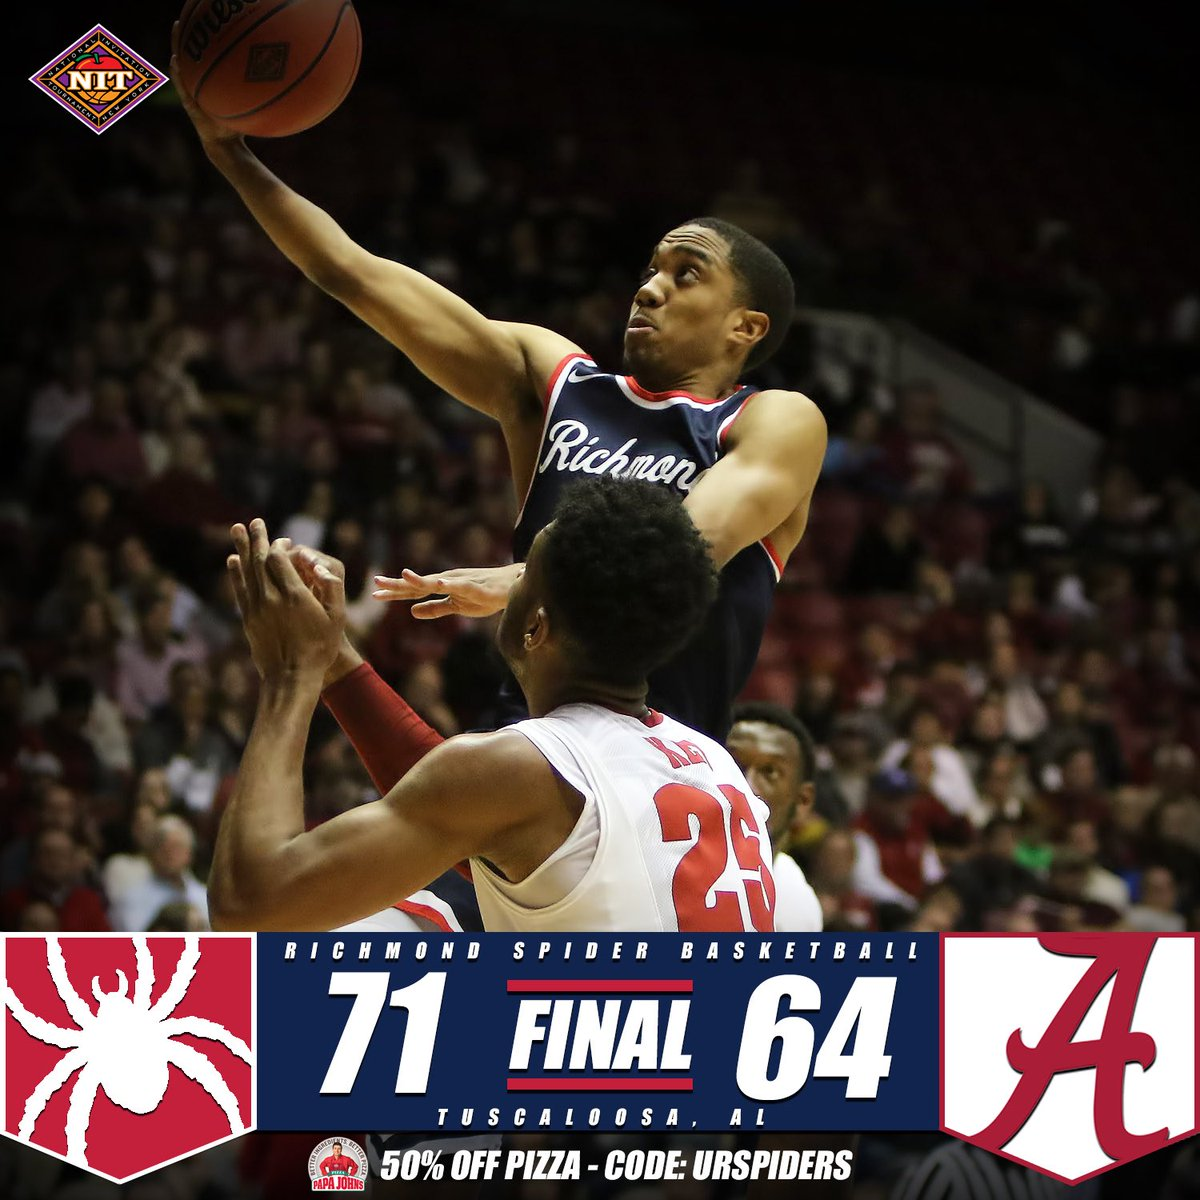 .@SpiderMBB defeats Alabama 71-64 to advance to the 2nd round of the NIT! #OneRichmond #RollSpides https://t.co/hGUCm7tmaC